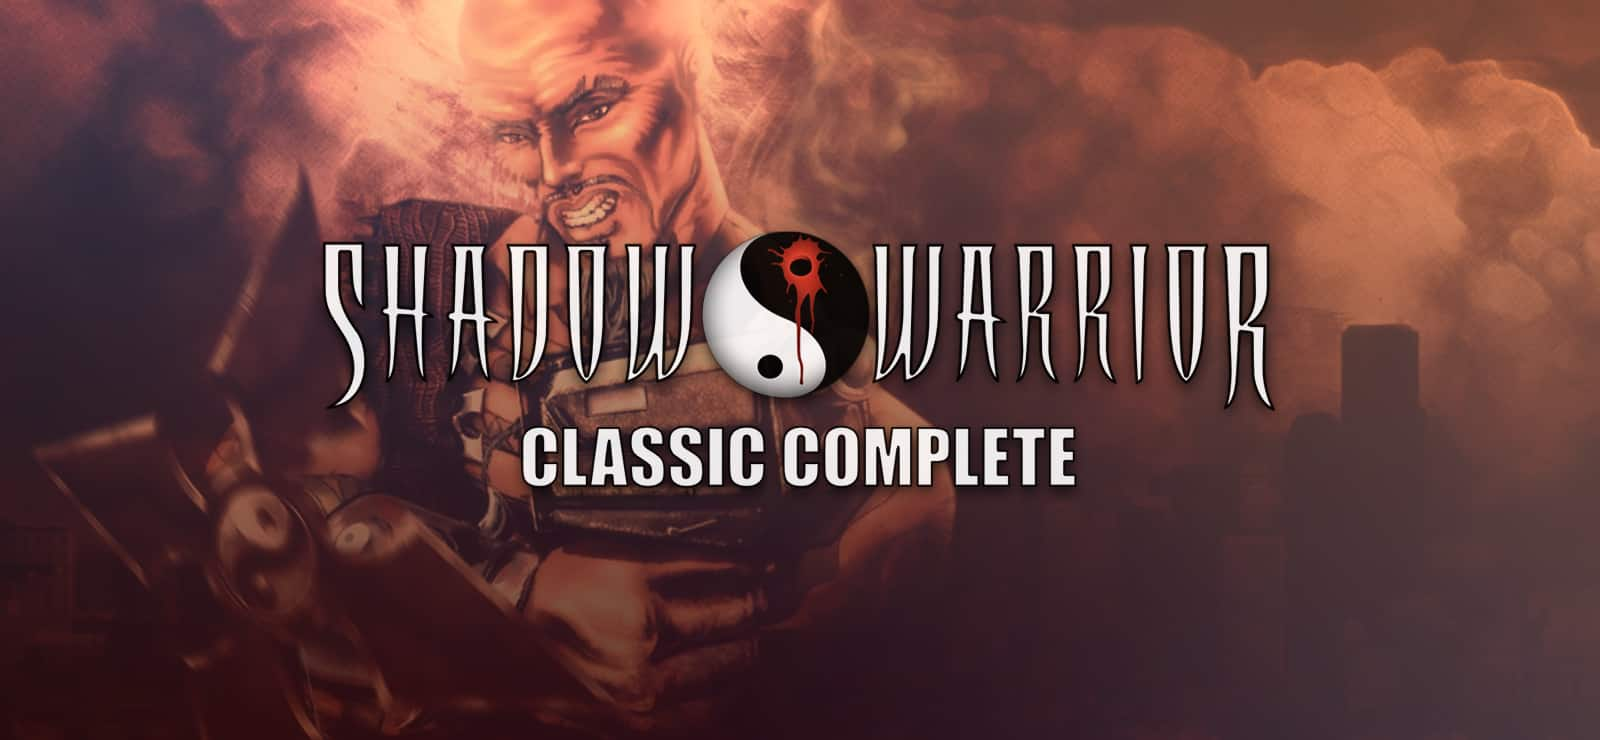 Shadow Warrior Classic Complete (PC Digital Download) for Free